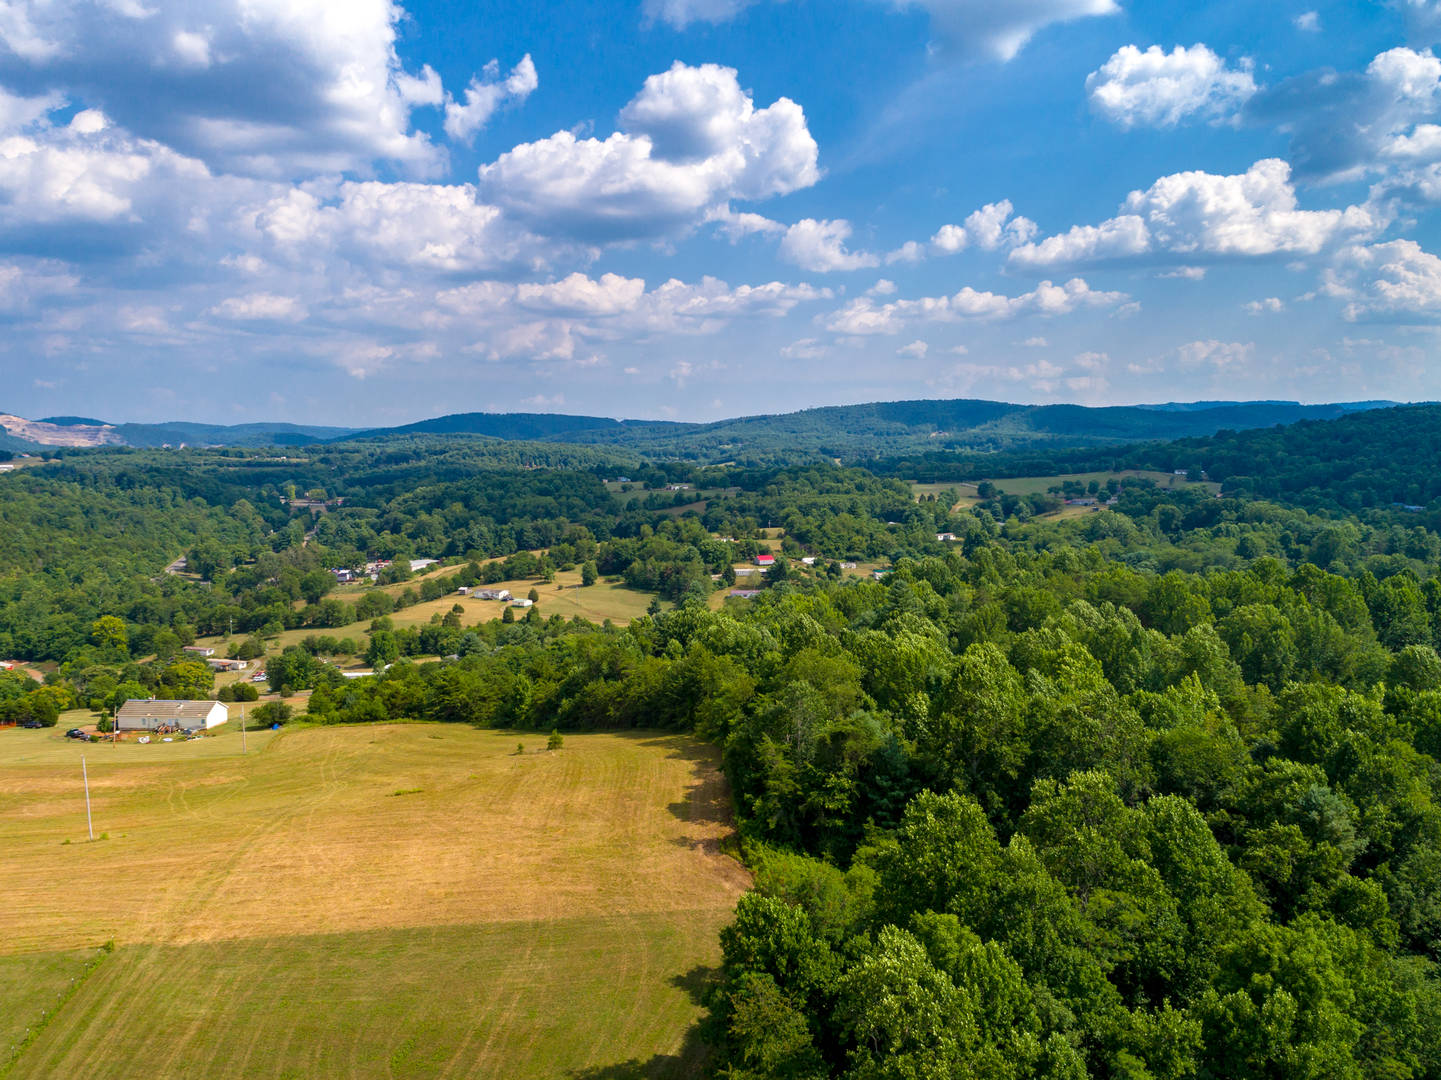 Lot 13 - Lone Ash Rd & Bald Meadow Lane Barren Springs, VA 24313